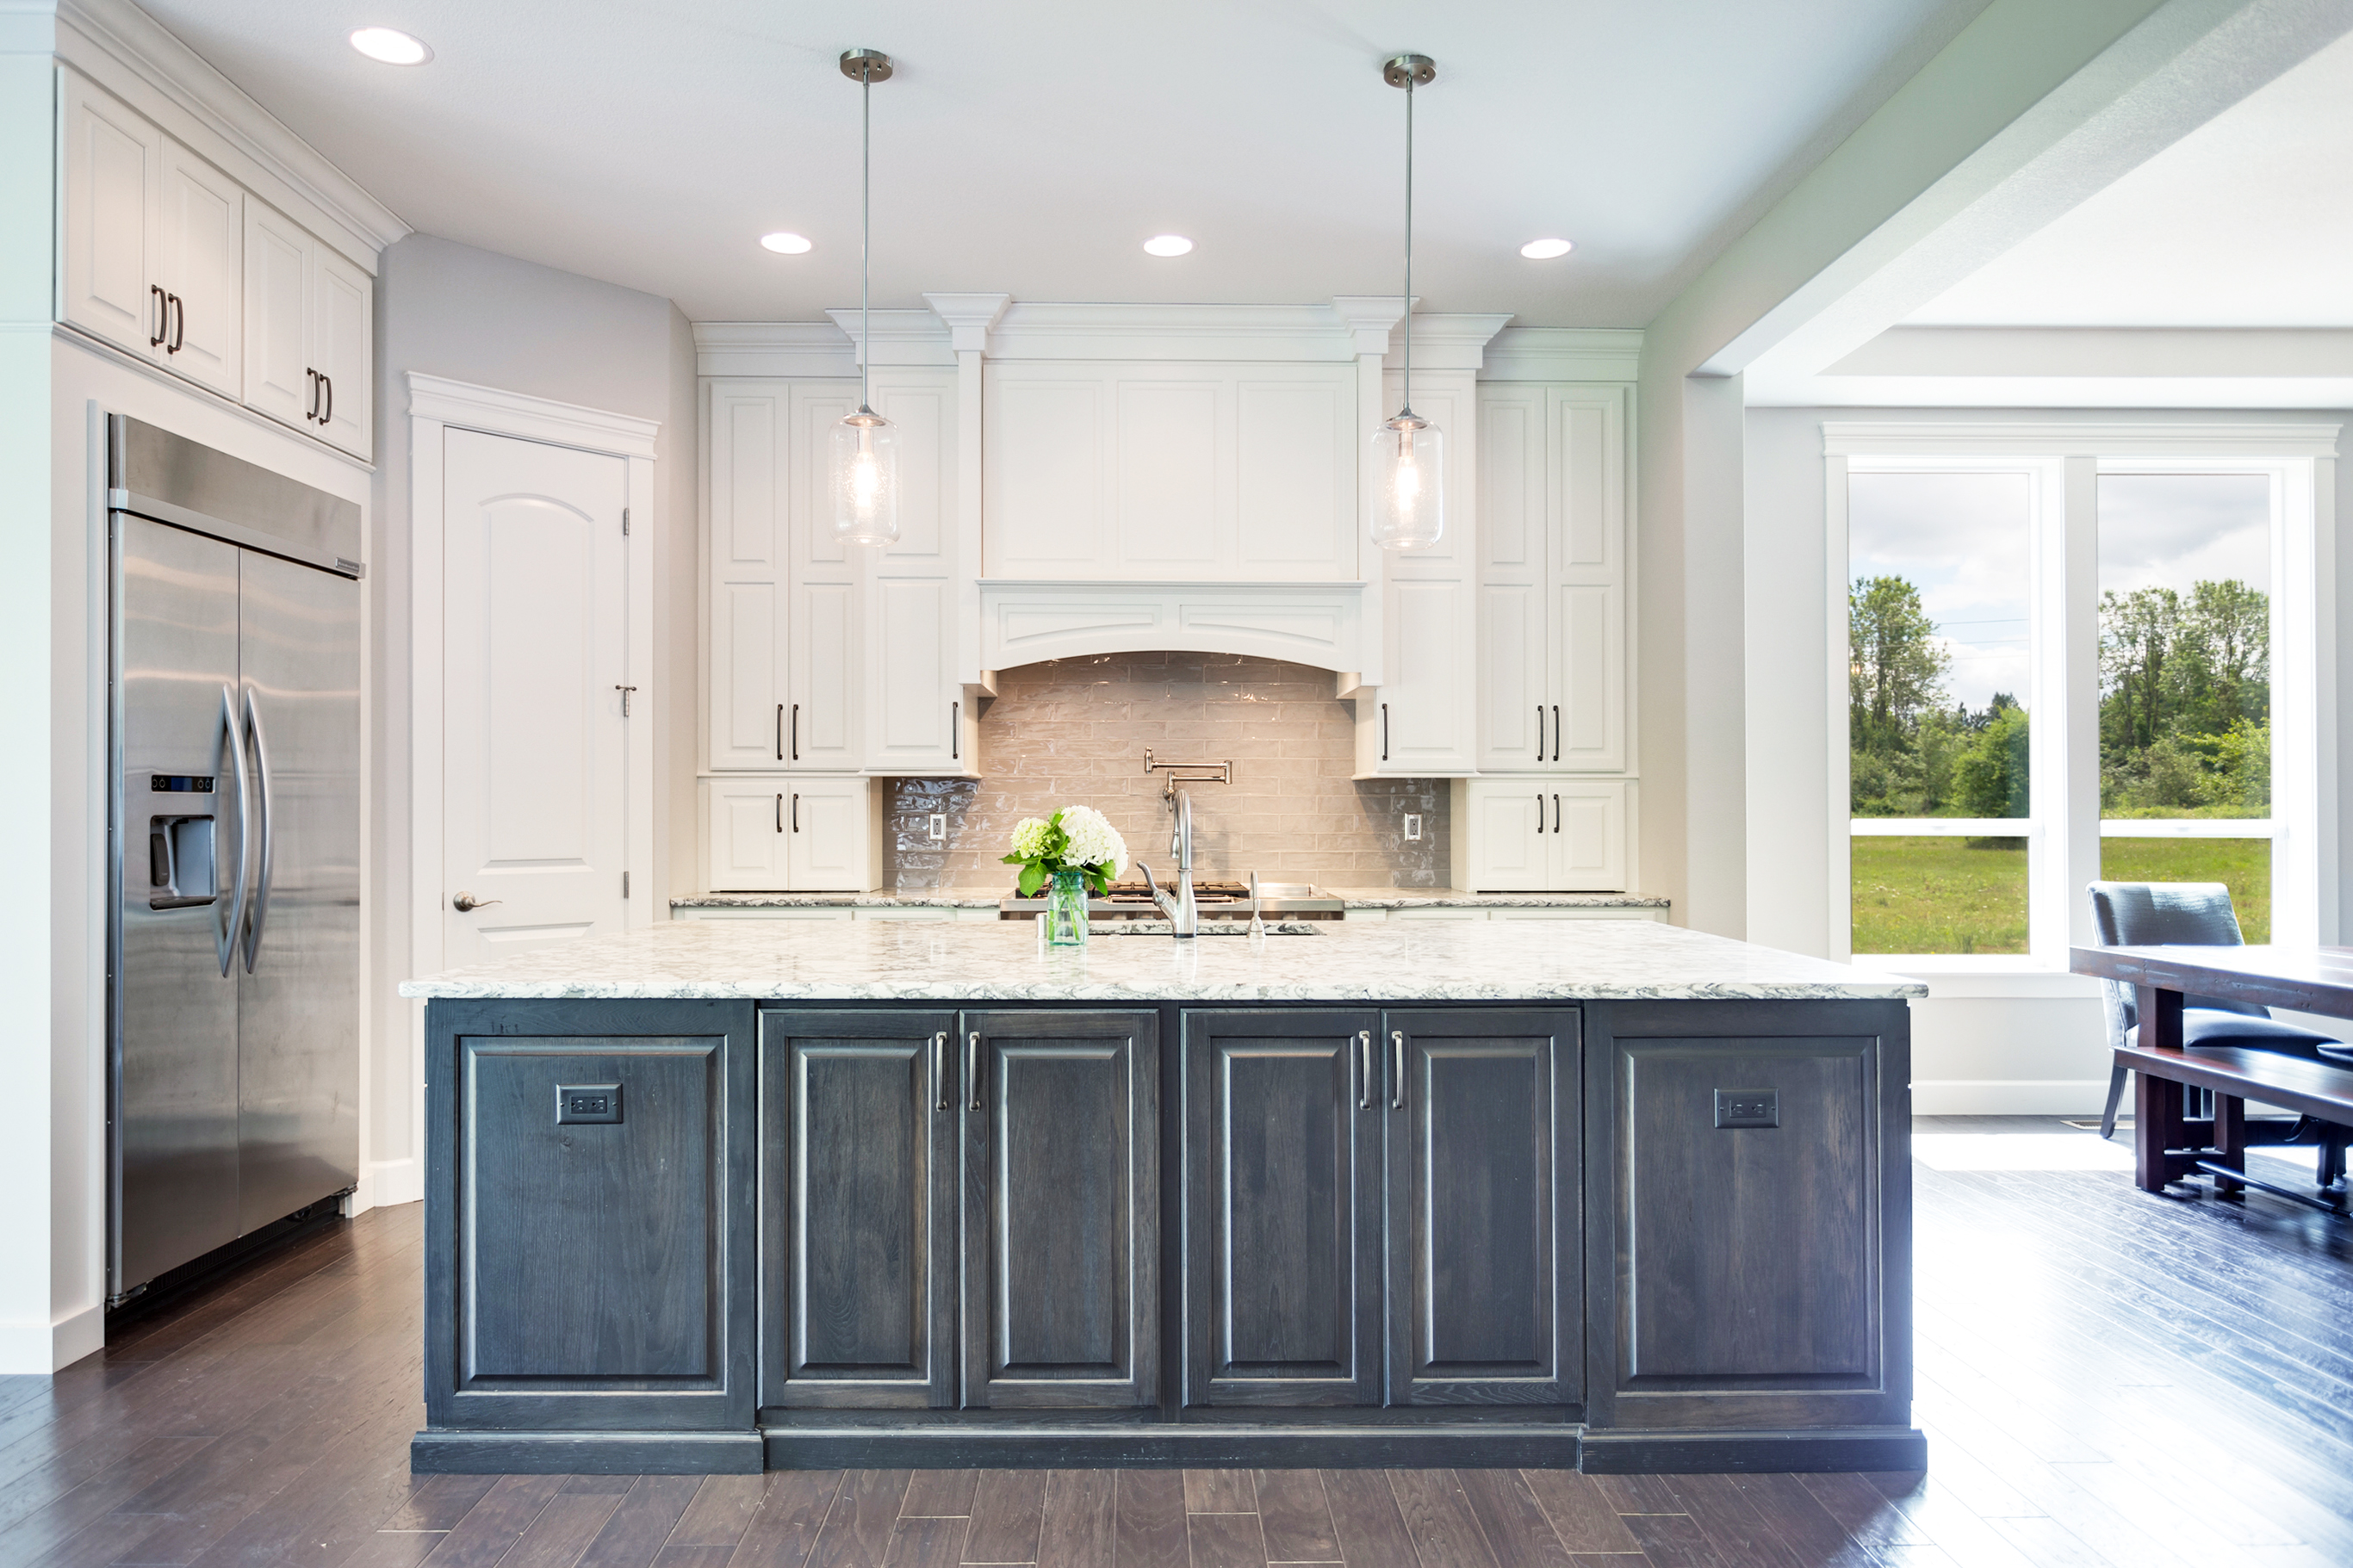 Kitchen Cabinets with Belvedere Doors